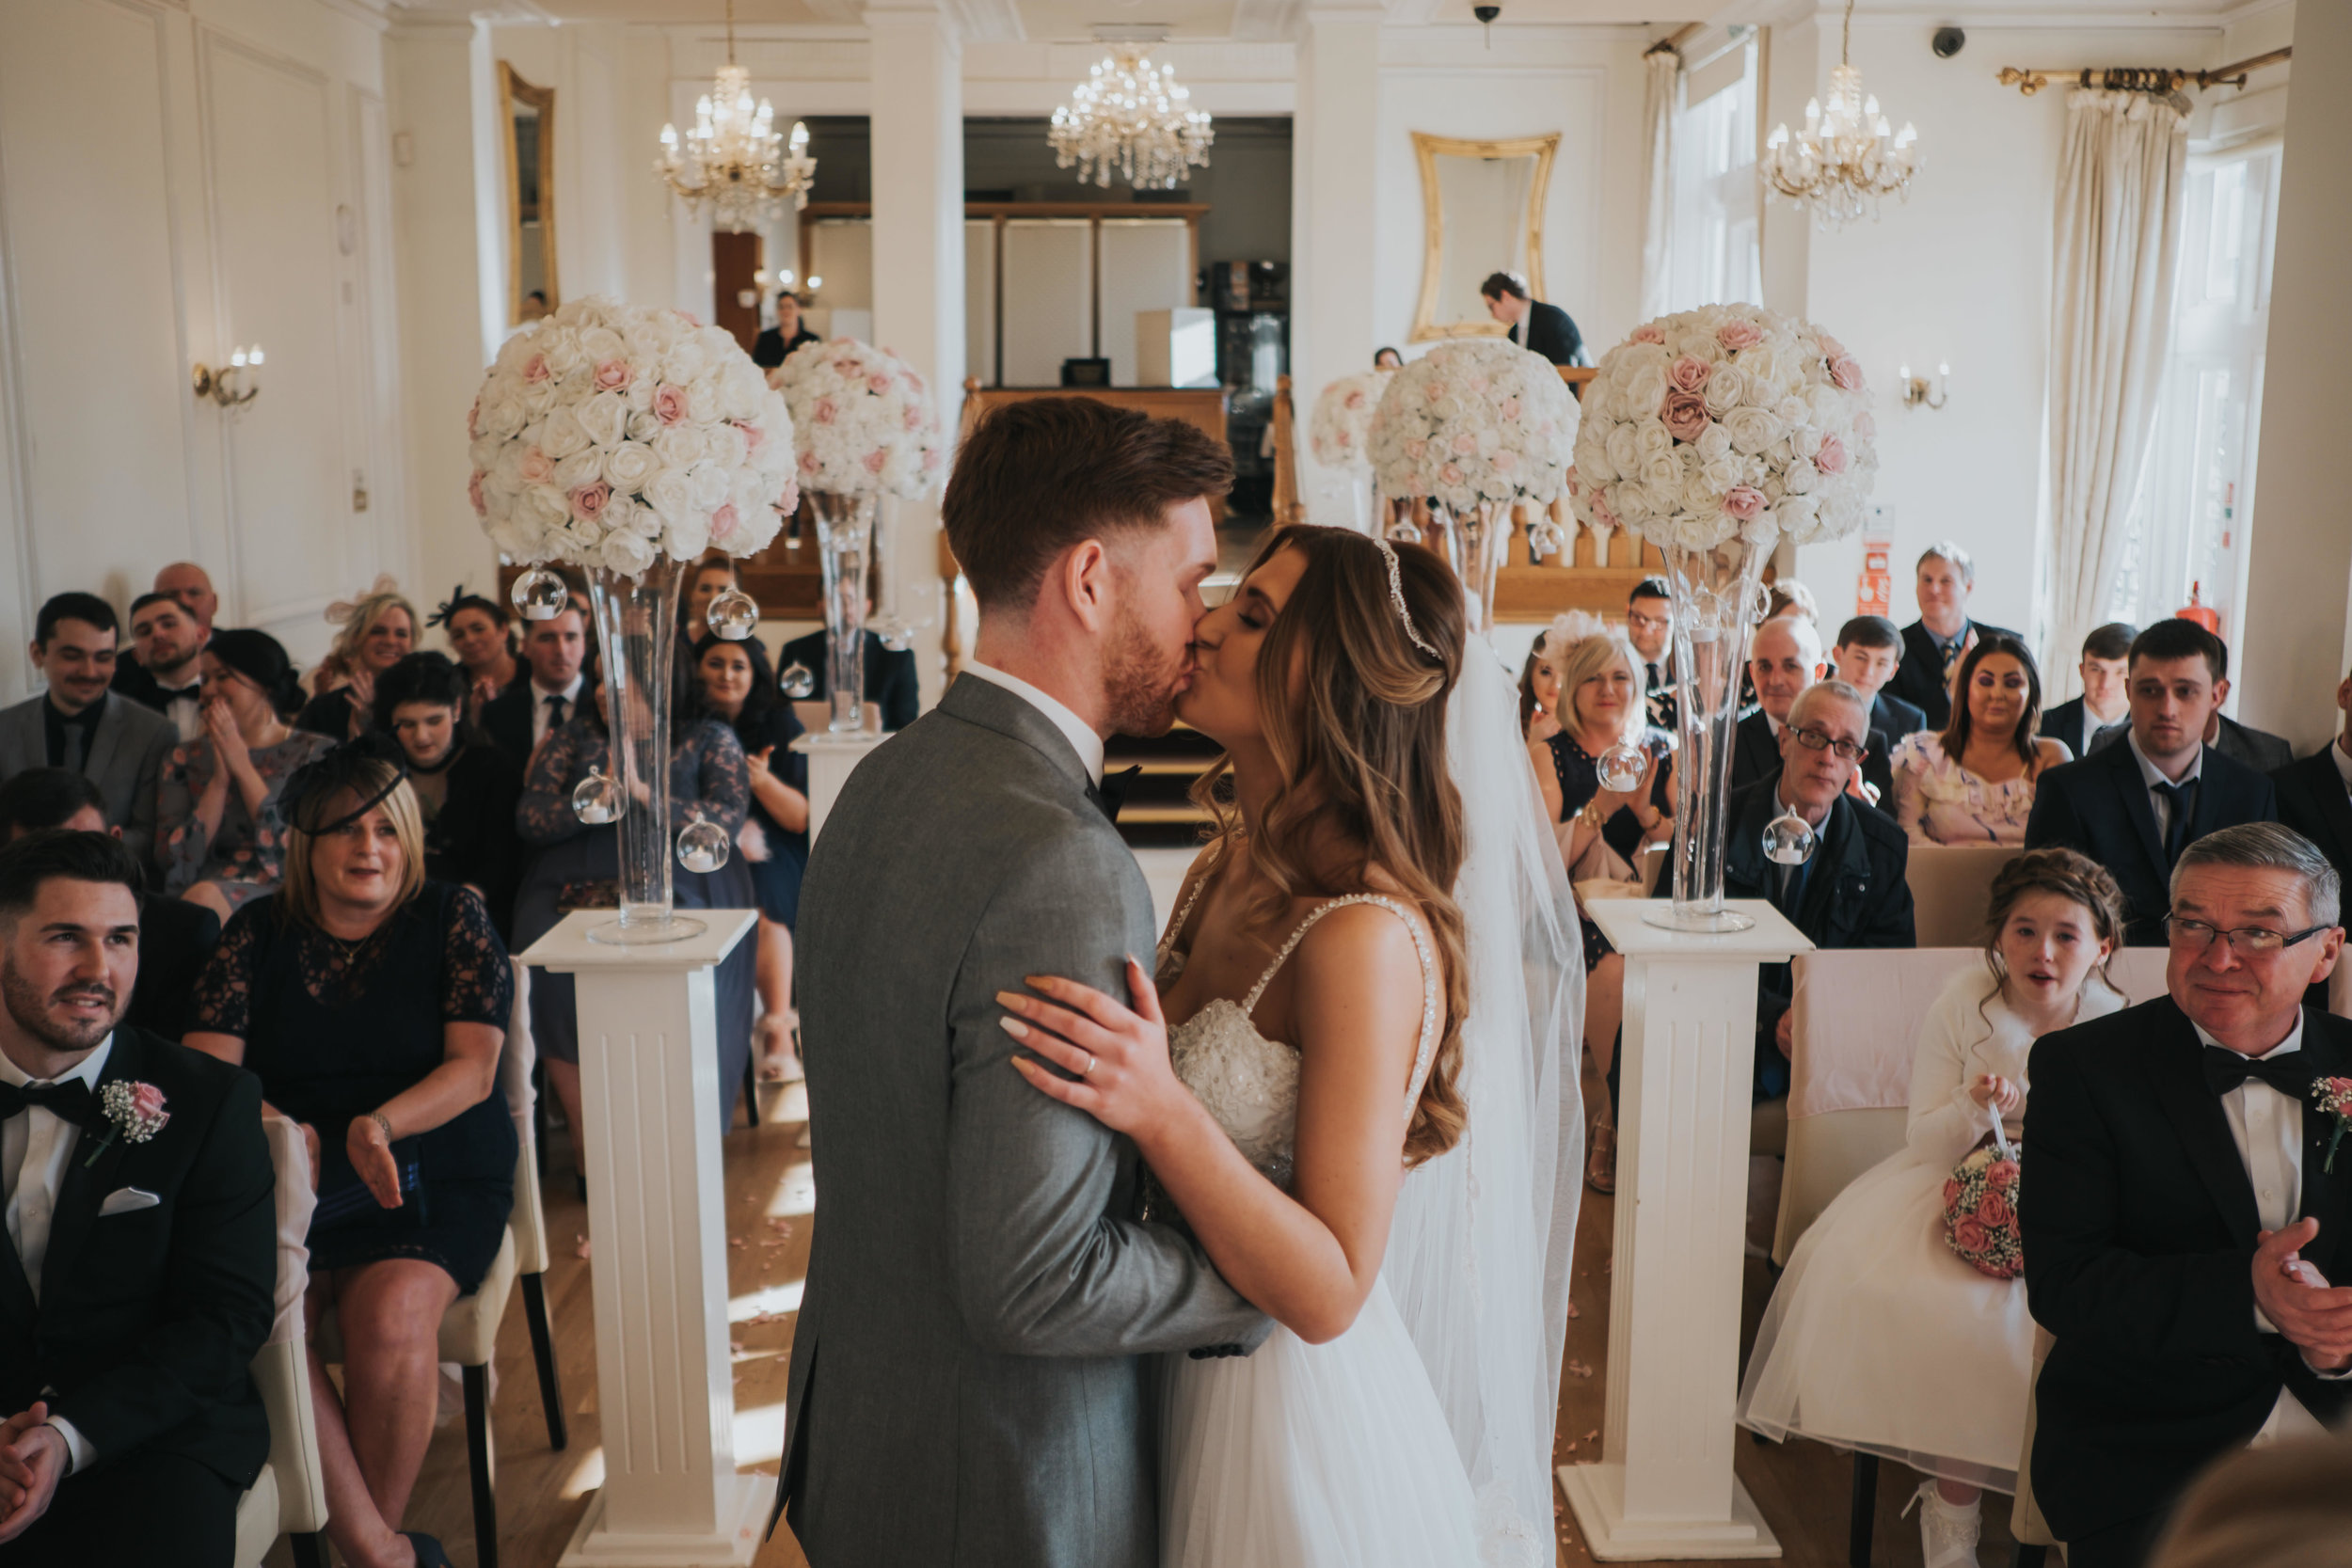 the first kiss from the bride and groom during their wedding ceremony